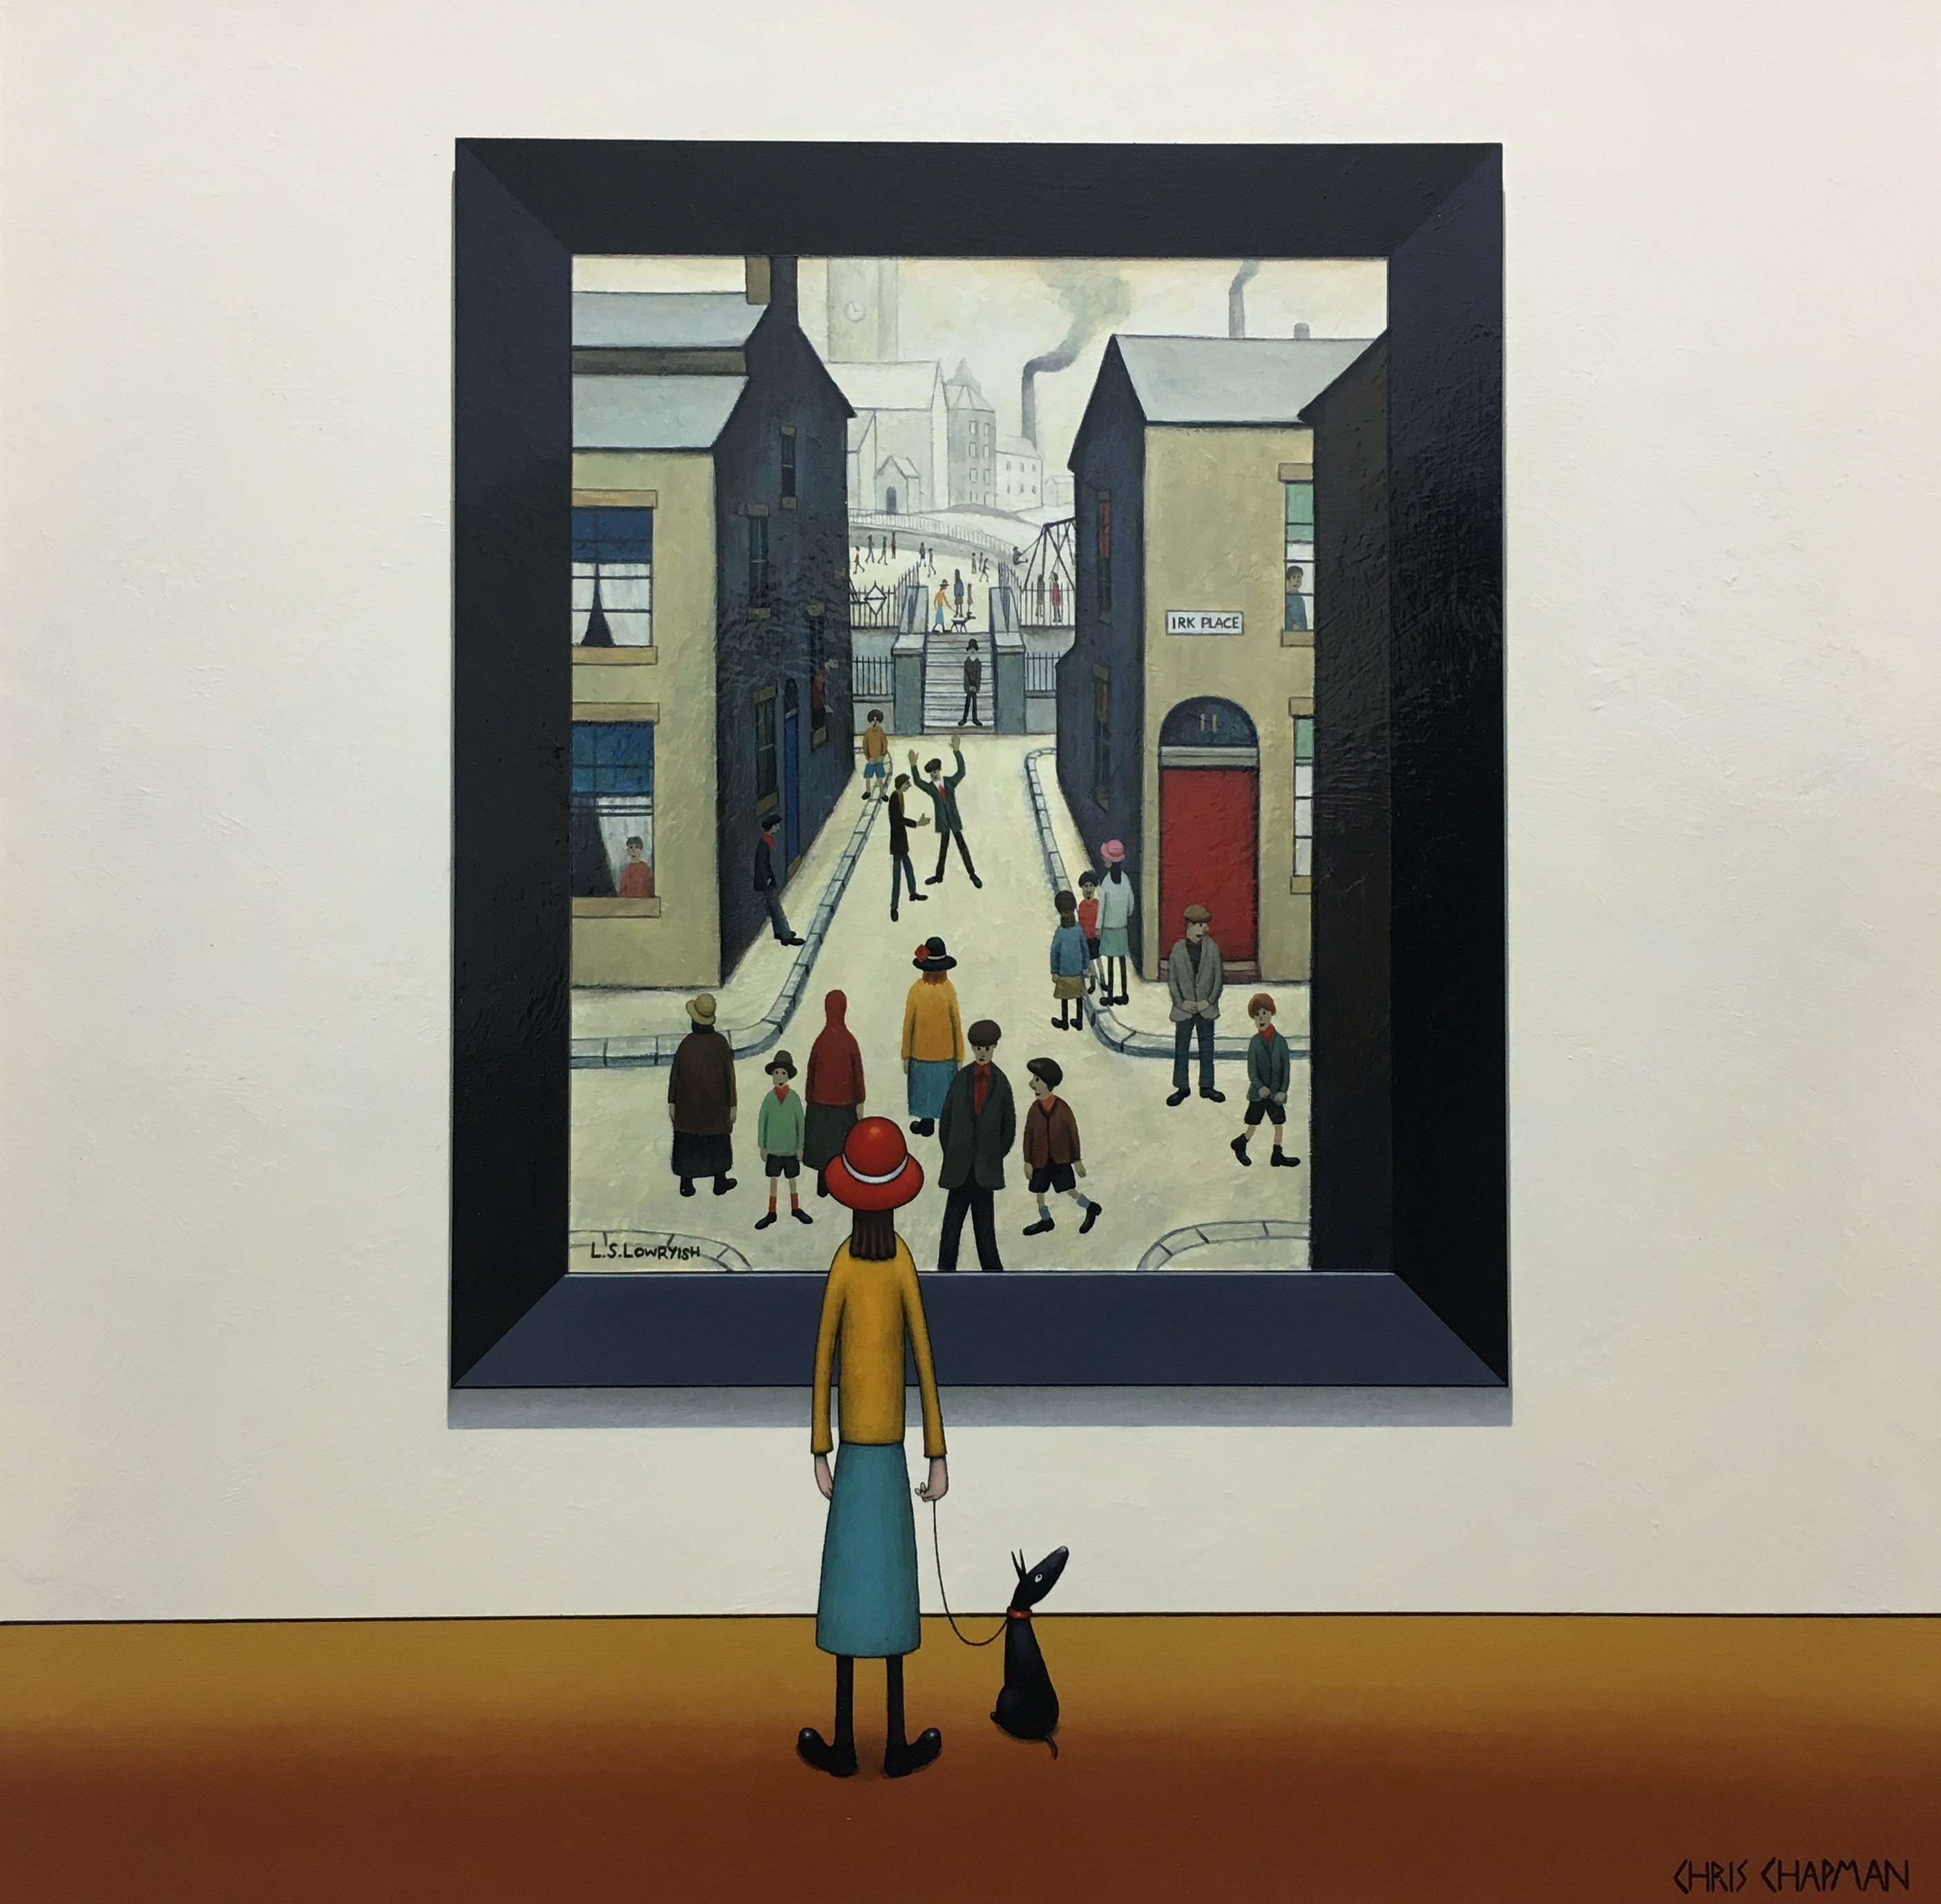 A lady stands in an art gallery admiring a painting depicting a street where children are playing, laughing and having fun. The houses are muted, monotone colours and the colour offered by the clothing of the people in the image including the lady admiring the painting add to the painting. They pop and stand out. She is wearing a red hat, yellow jacket and blue skirt.